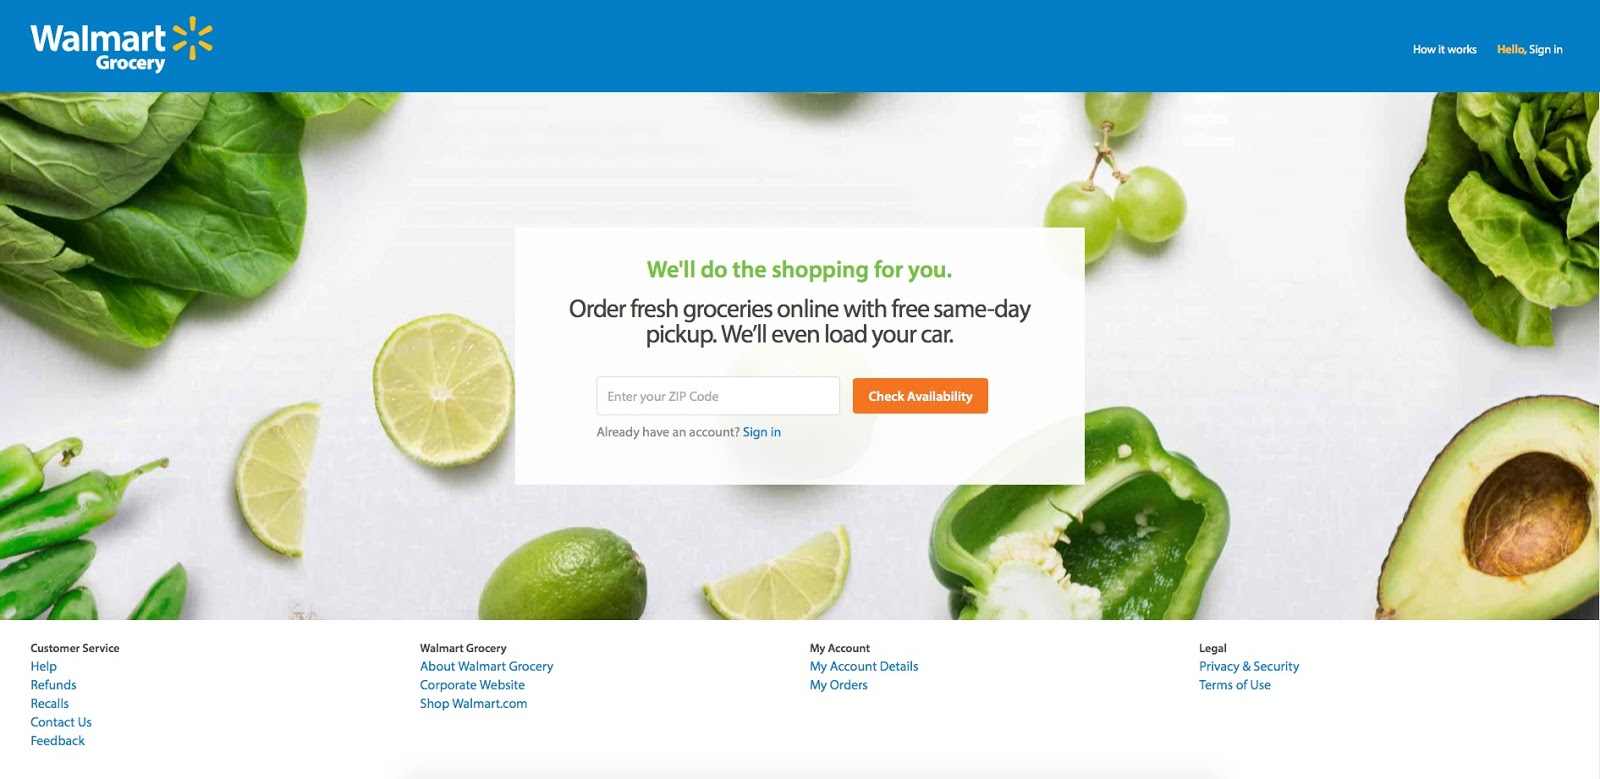 · Walmart is now testing a new service that allows customers to order their groceries online and pick them up at a self-serving kiosk.